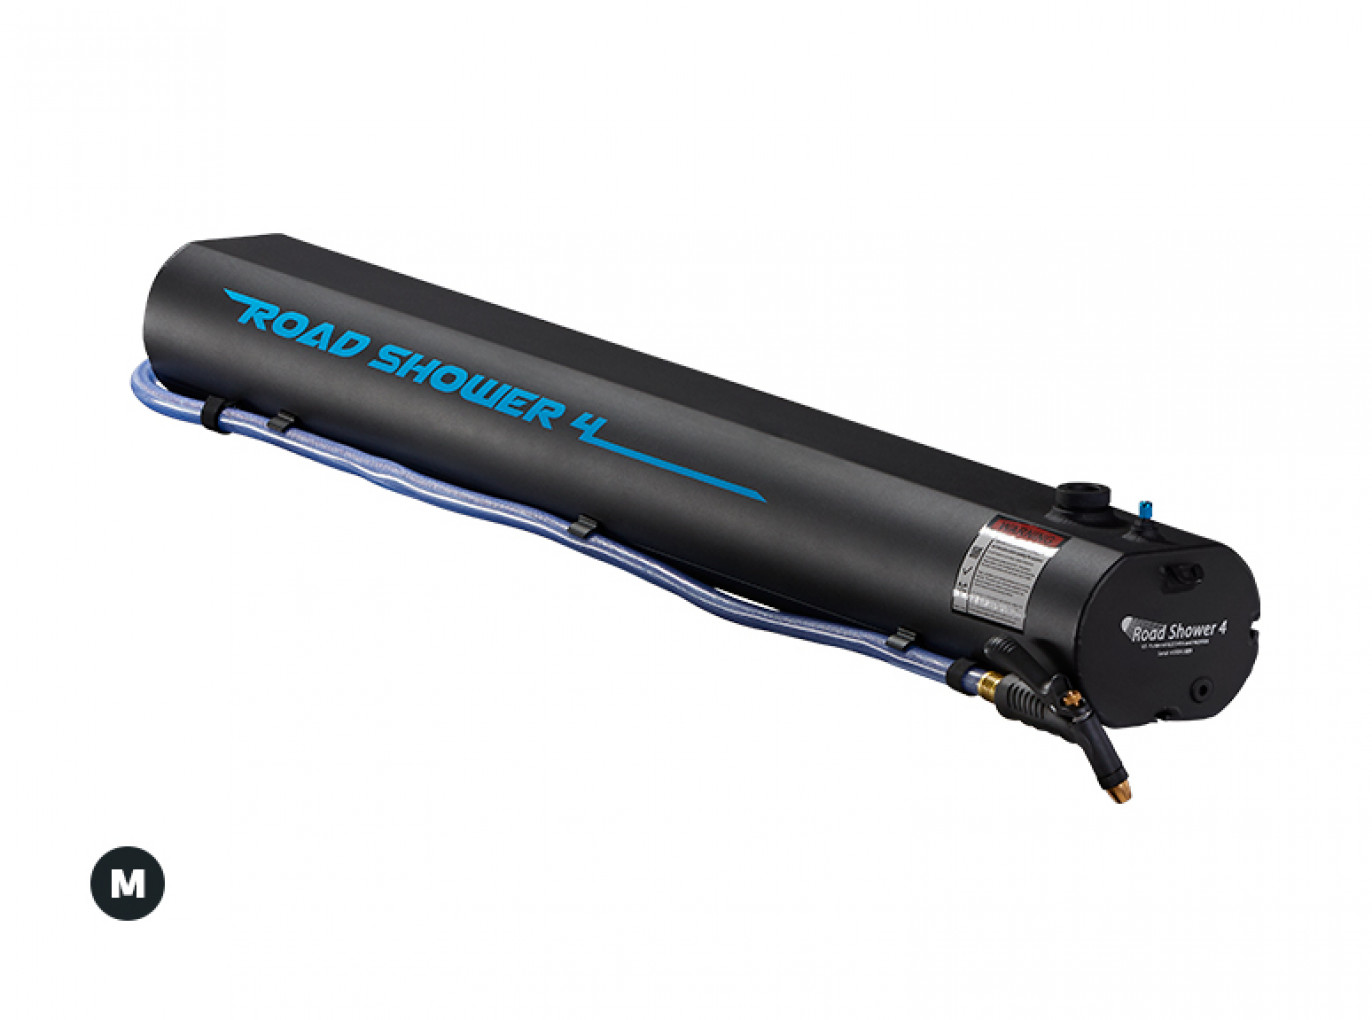 Yakima RoadShower lands on your roof for water-on-demand anywhere you roam